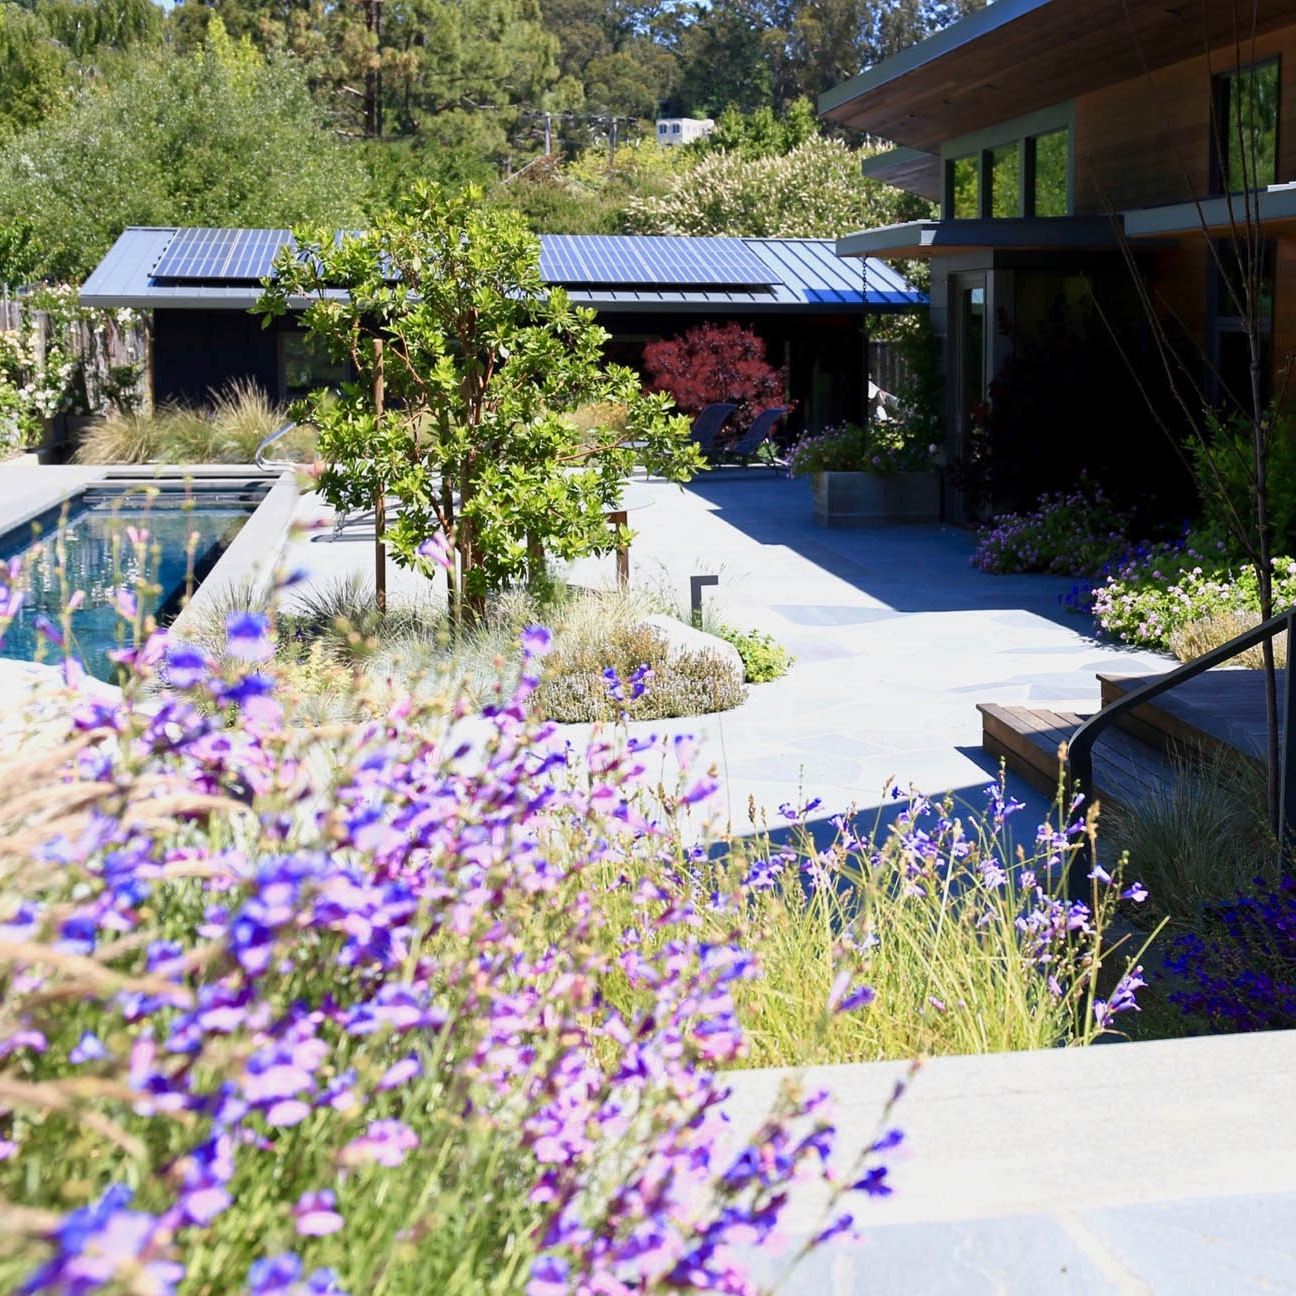 Mill Valley Residence - a new home for an artist & a writer